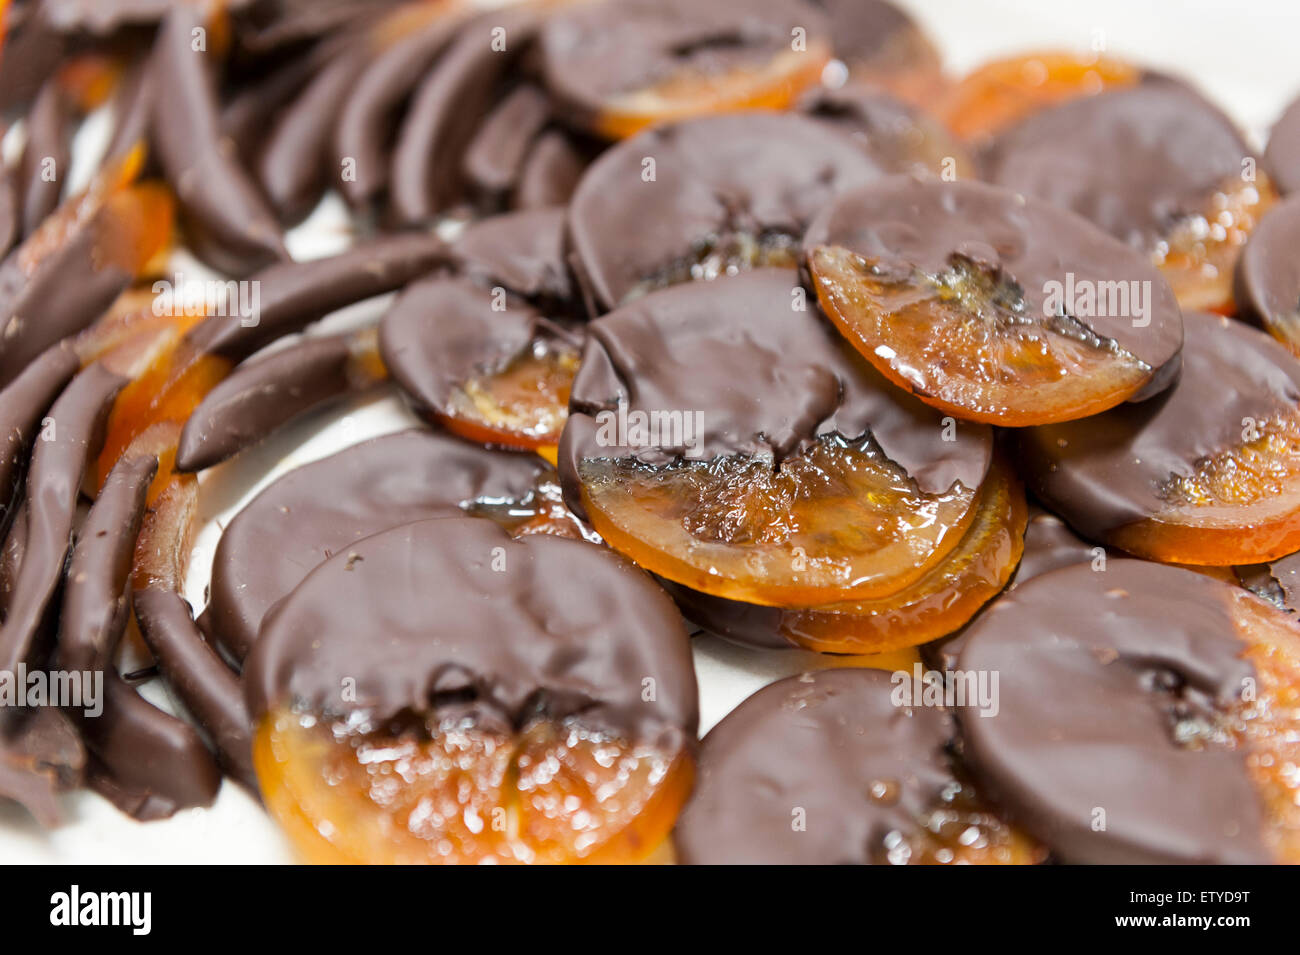 orange peels coated with dark chocolate - Stock Image